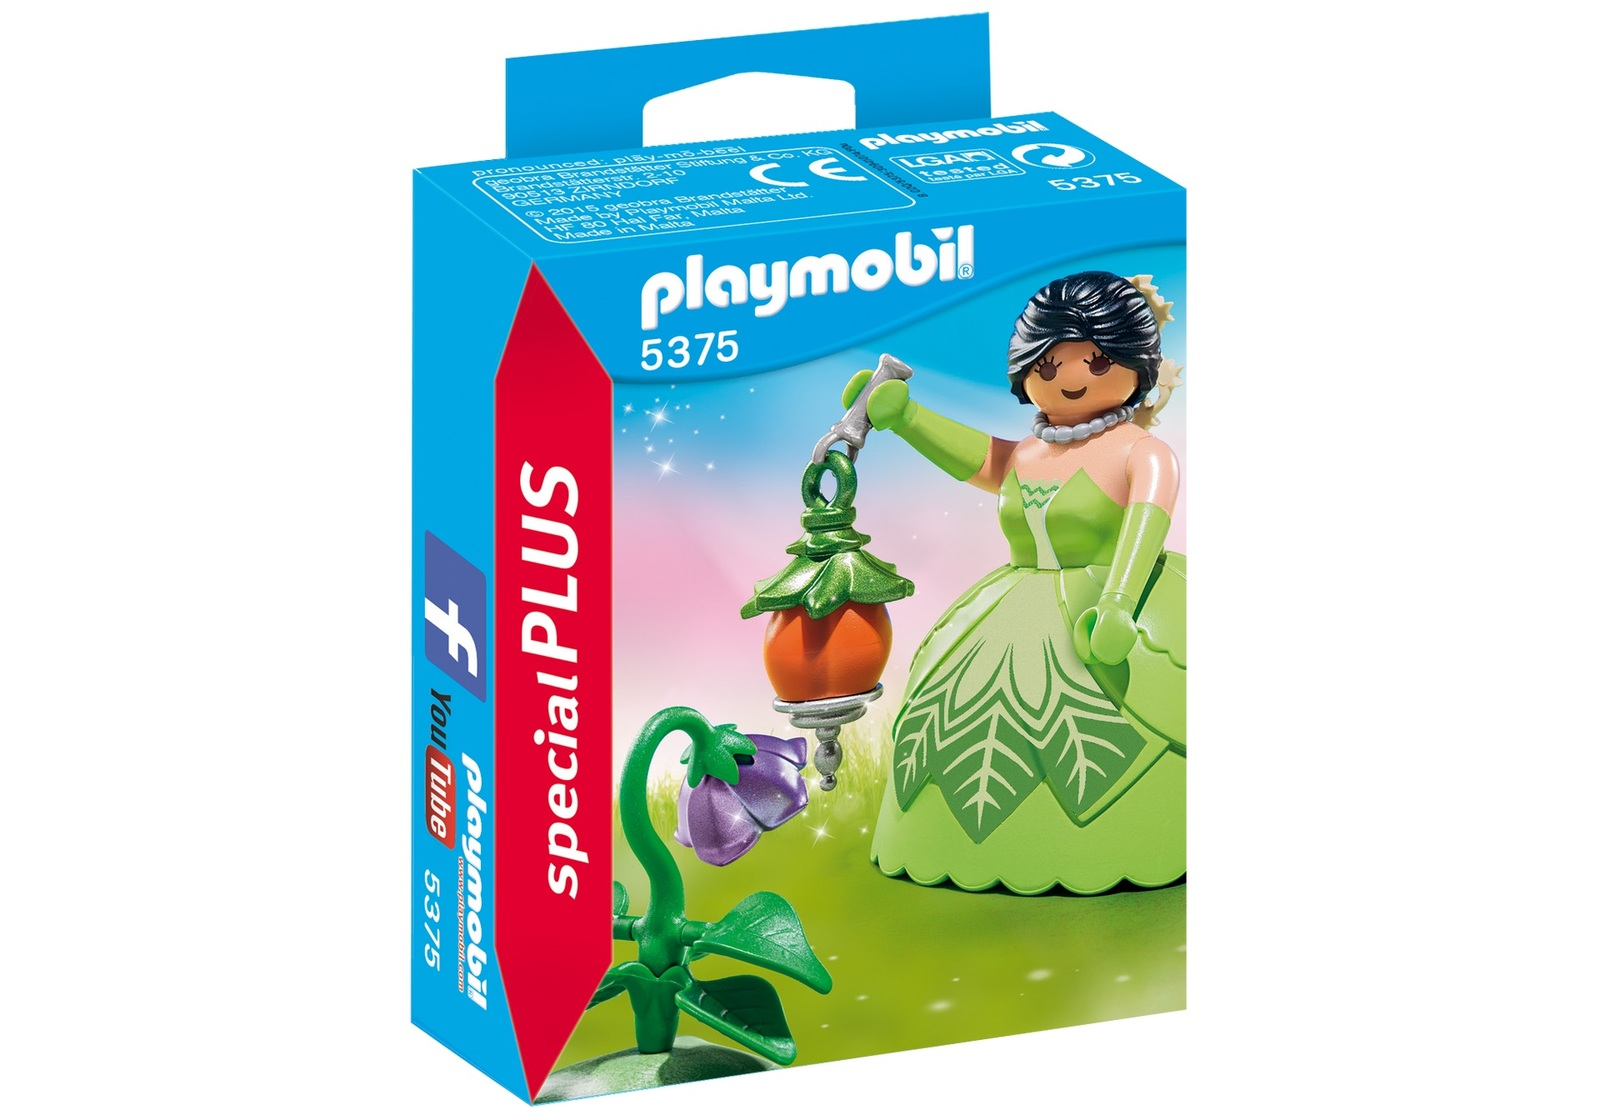 Playmobil: Special Plus - Garden Princess image